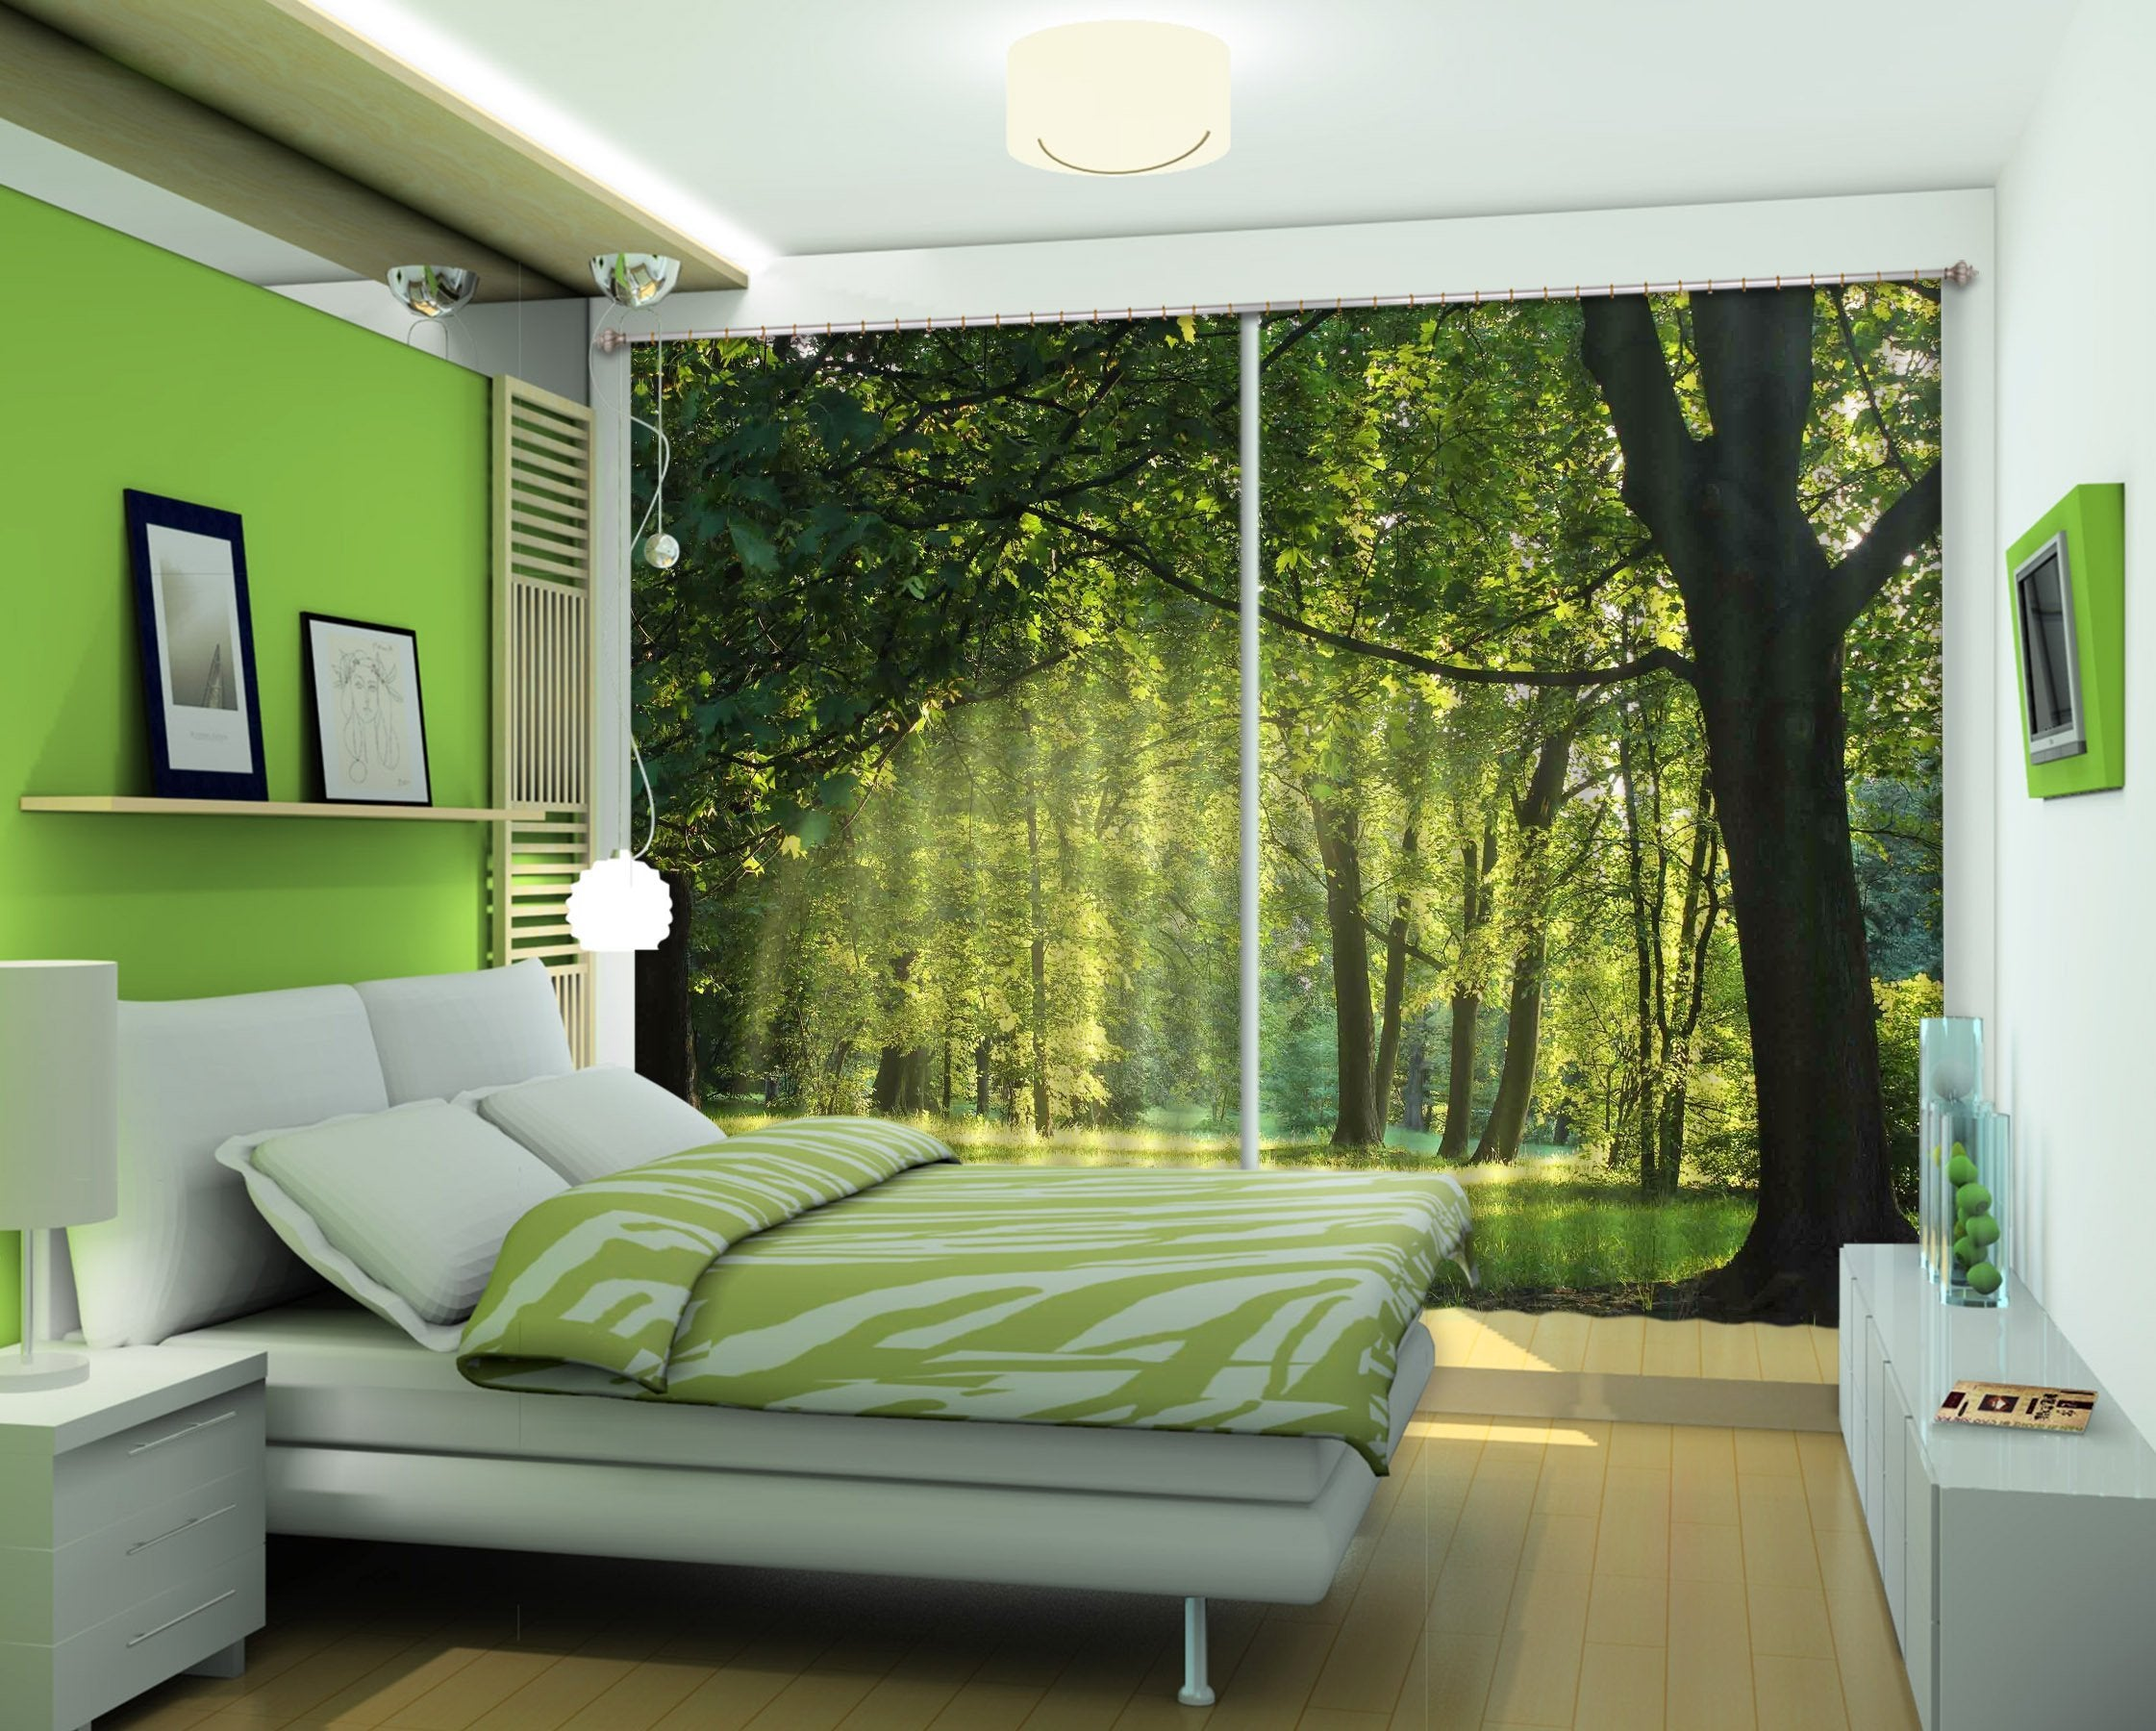 3D Green Lawn Trees 2232 Curtains Drapes Wallpaper AJ Wallpaper